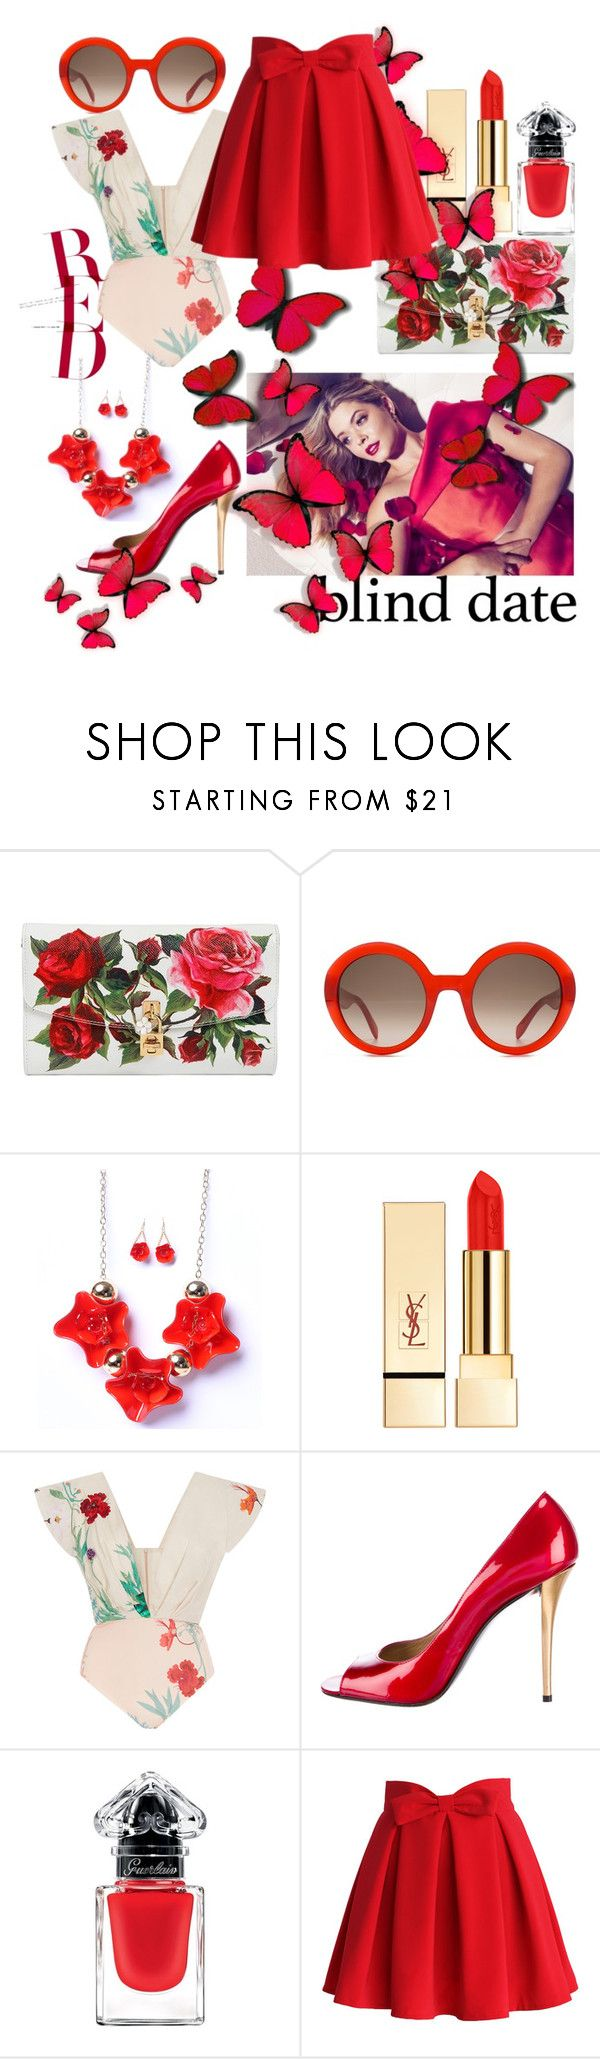 """red blind"" by nineseventyseven ❤ liked on Polyvore featuring Dolce&Gabbana, Alexander McQueen, PUR, Johanna Ortiz, Stuart Weitzman, Guerlain, Chicwish, red, Flowers and blinddate"